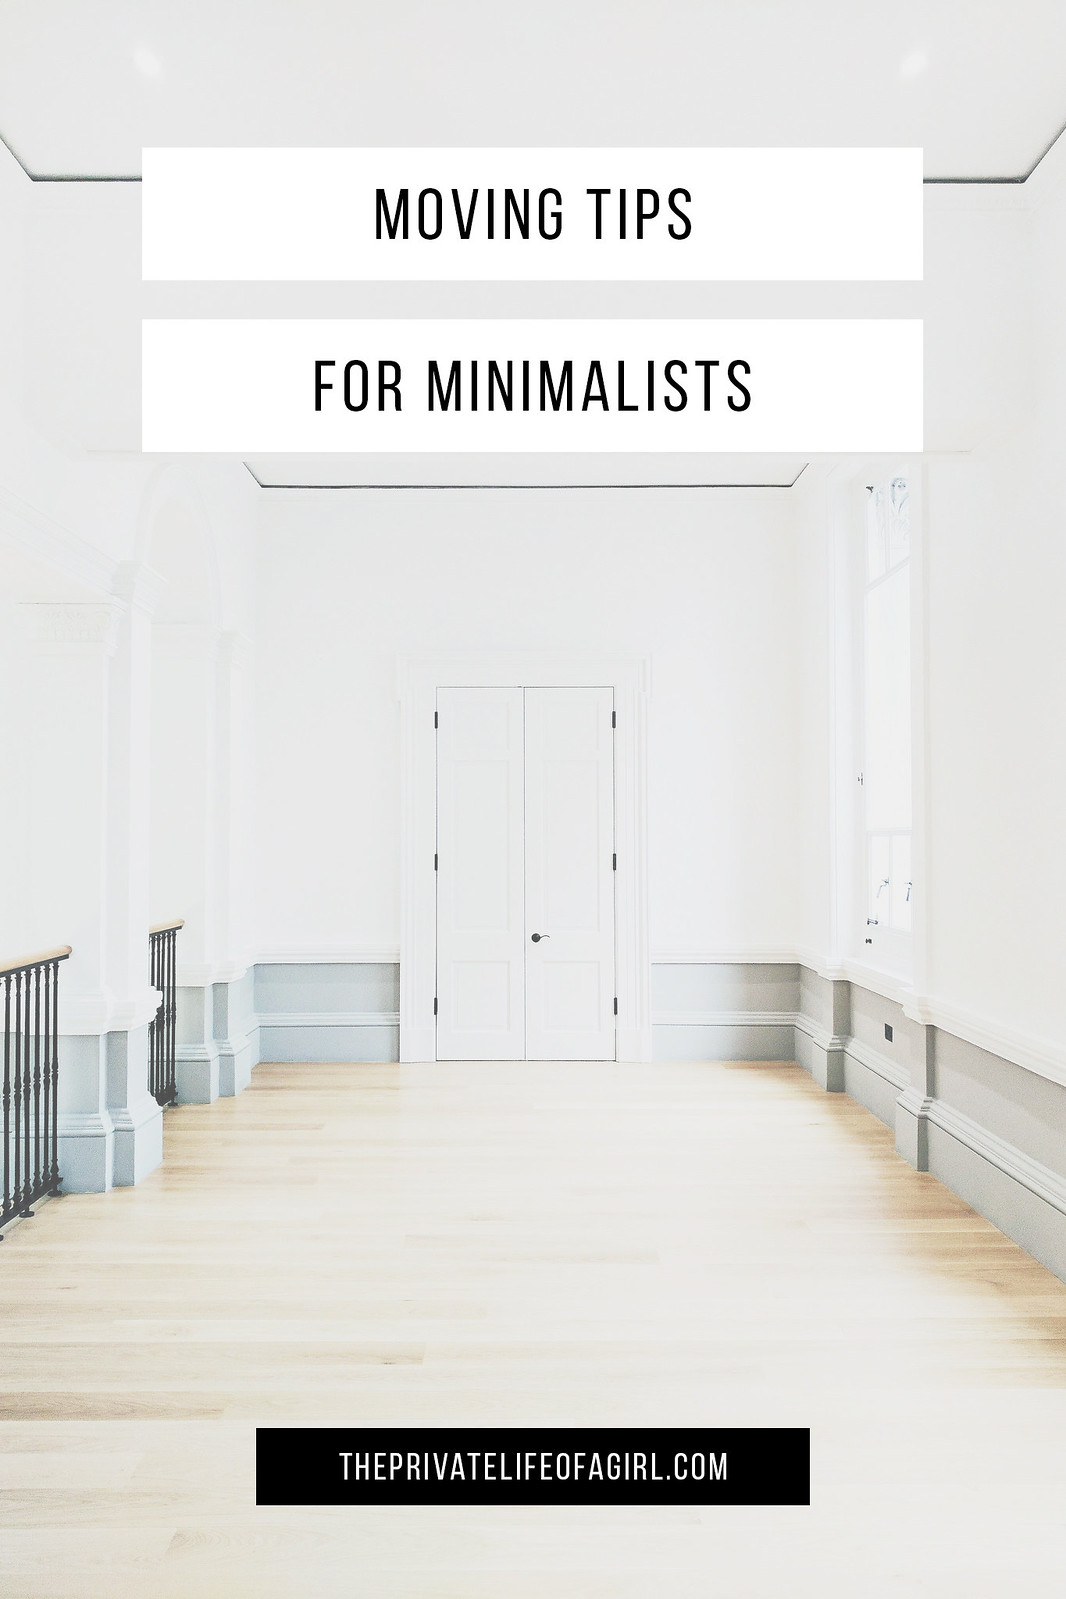 Minimalist moving tips the private life of a girl for Minimalist moving house